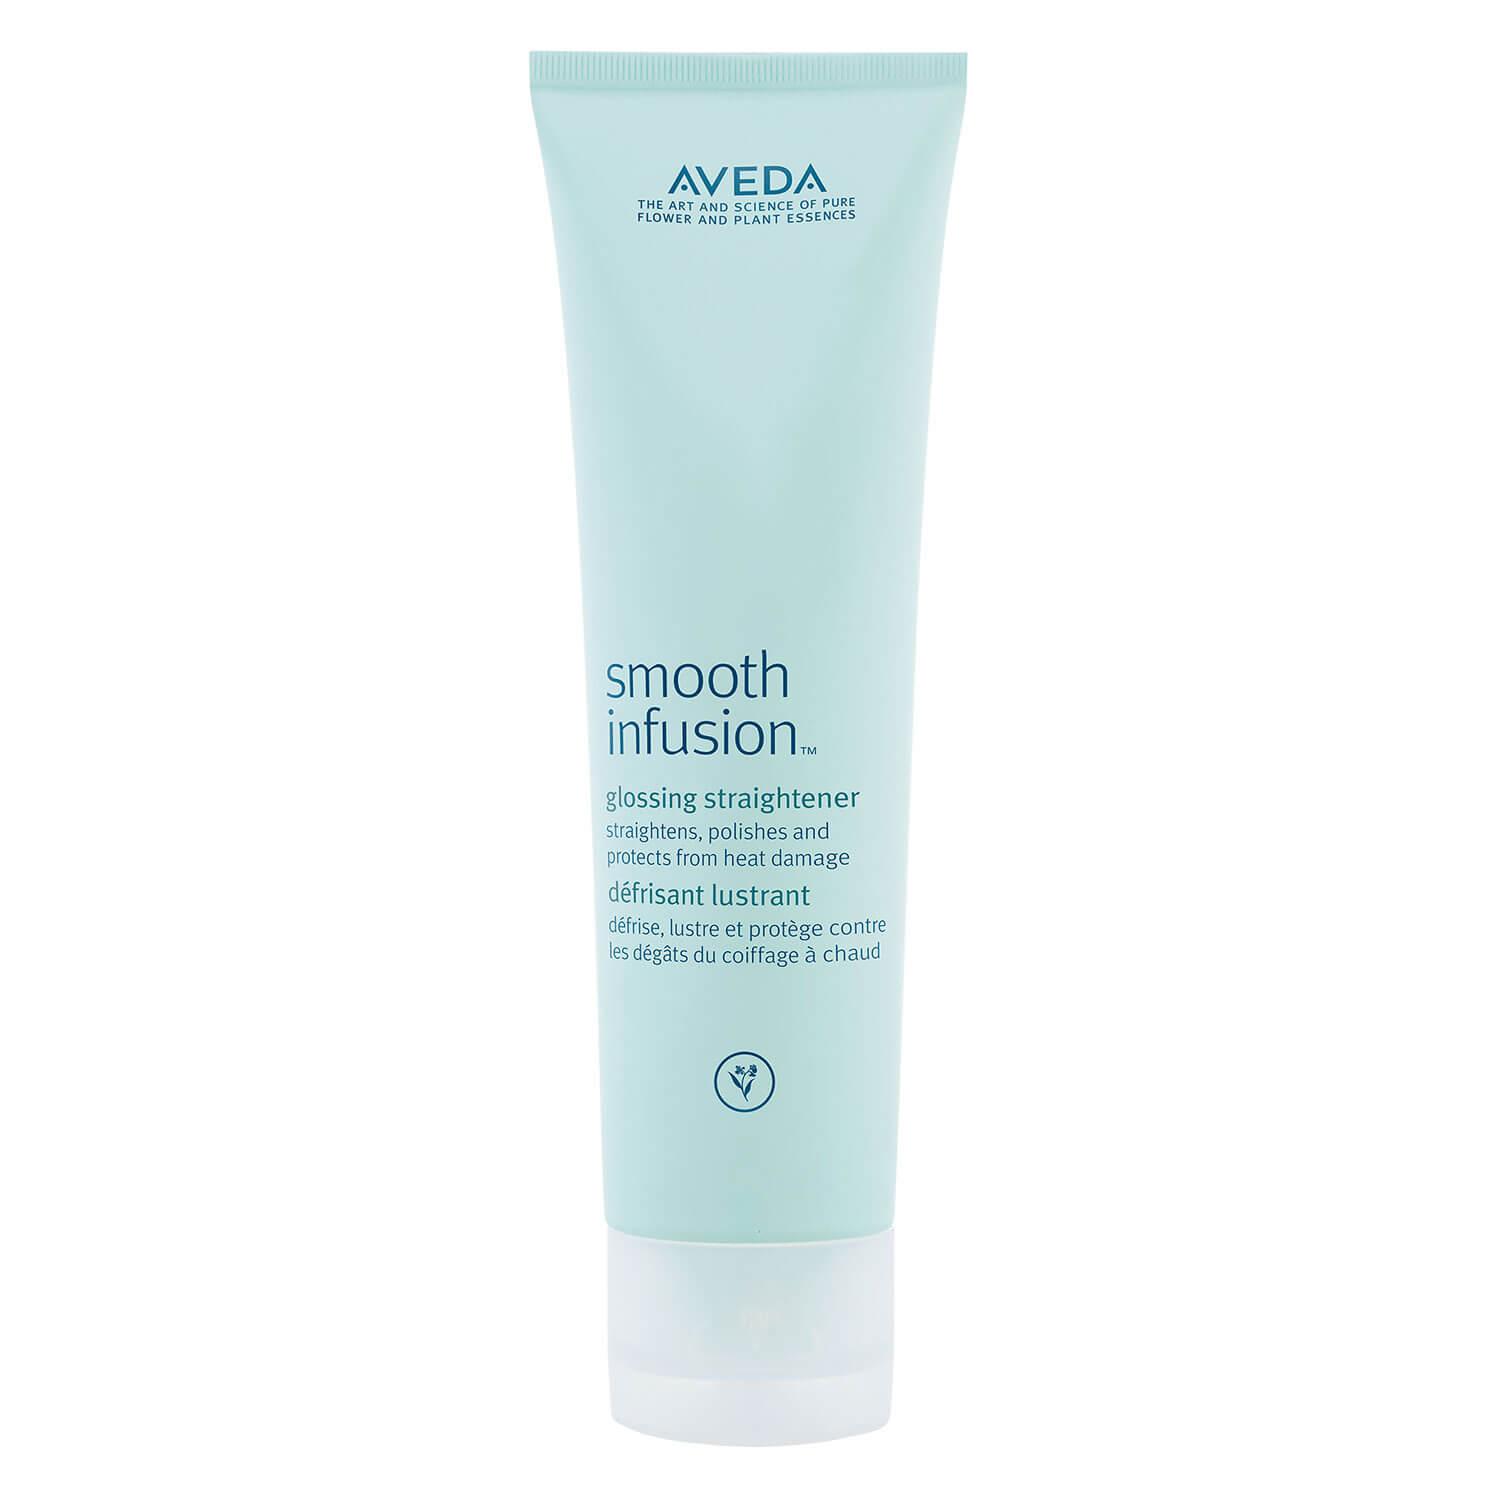 smooth infusion - glossing straightener - 125ml